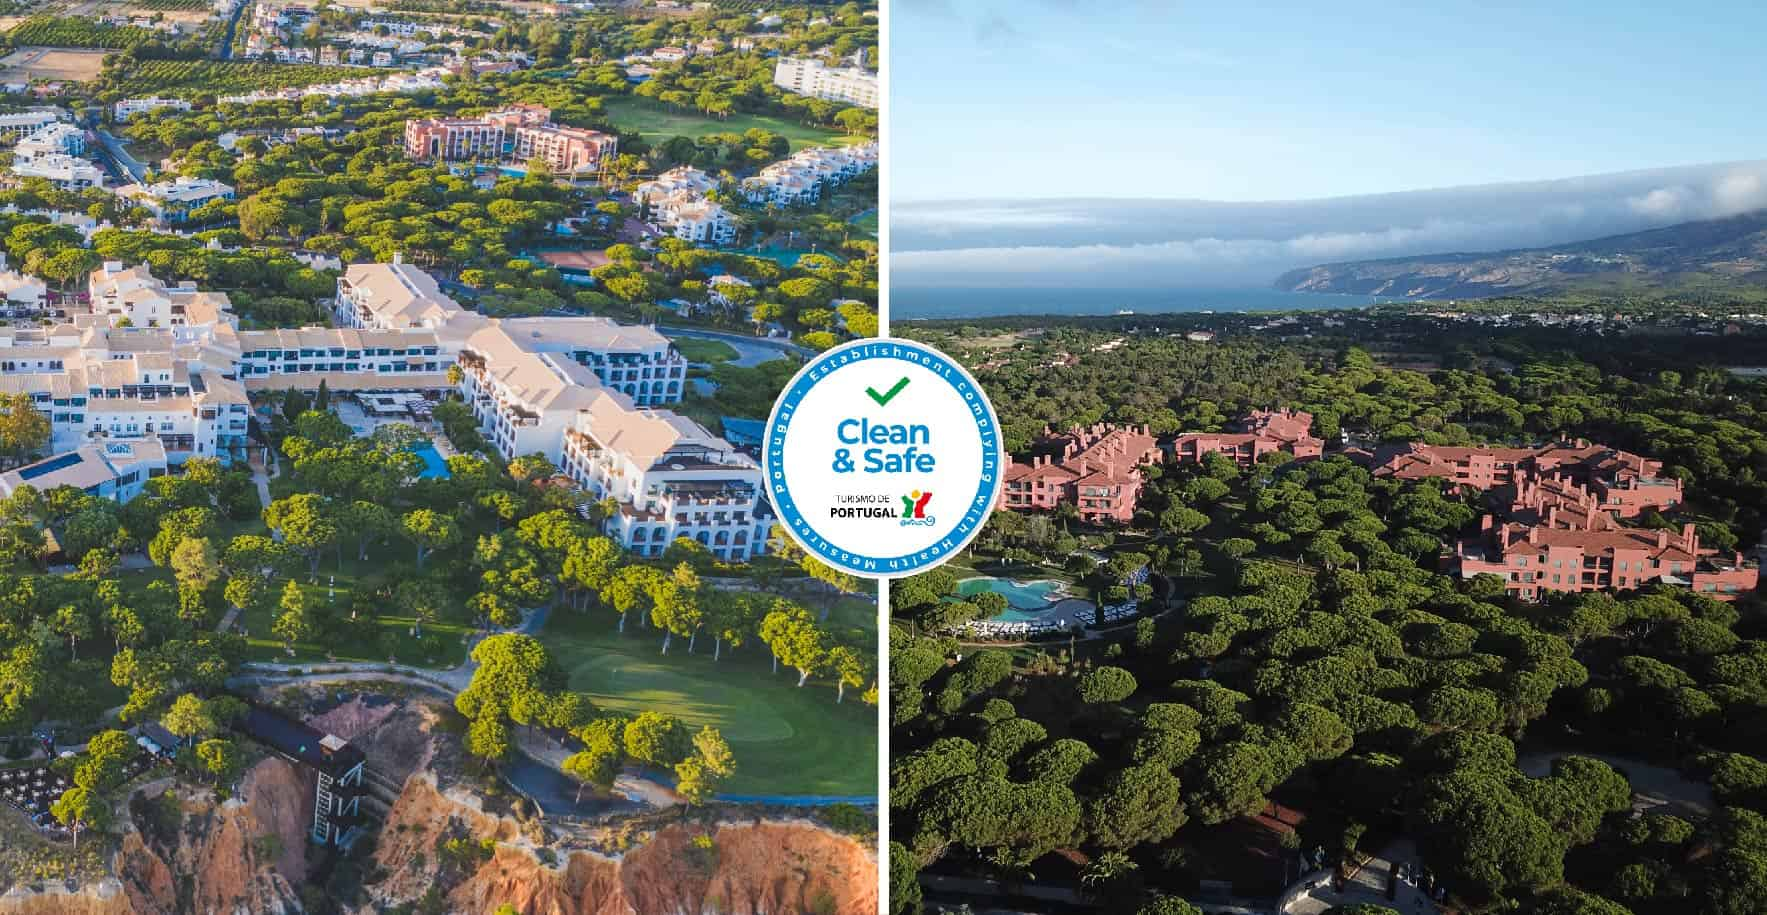 Vistas aéreas Pine Cliffs Resort e Sheraton Cascais Resort, ambas propriedades do grupo UIP com selo Clean and Safe